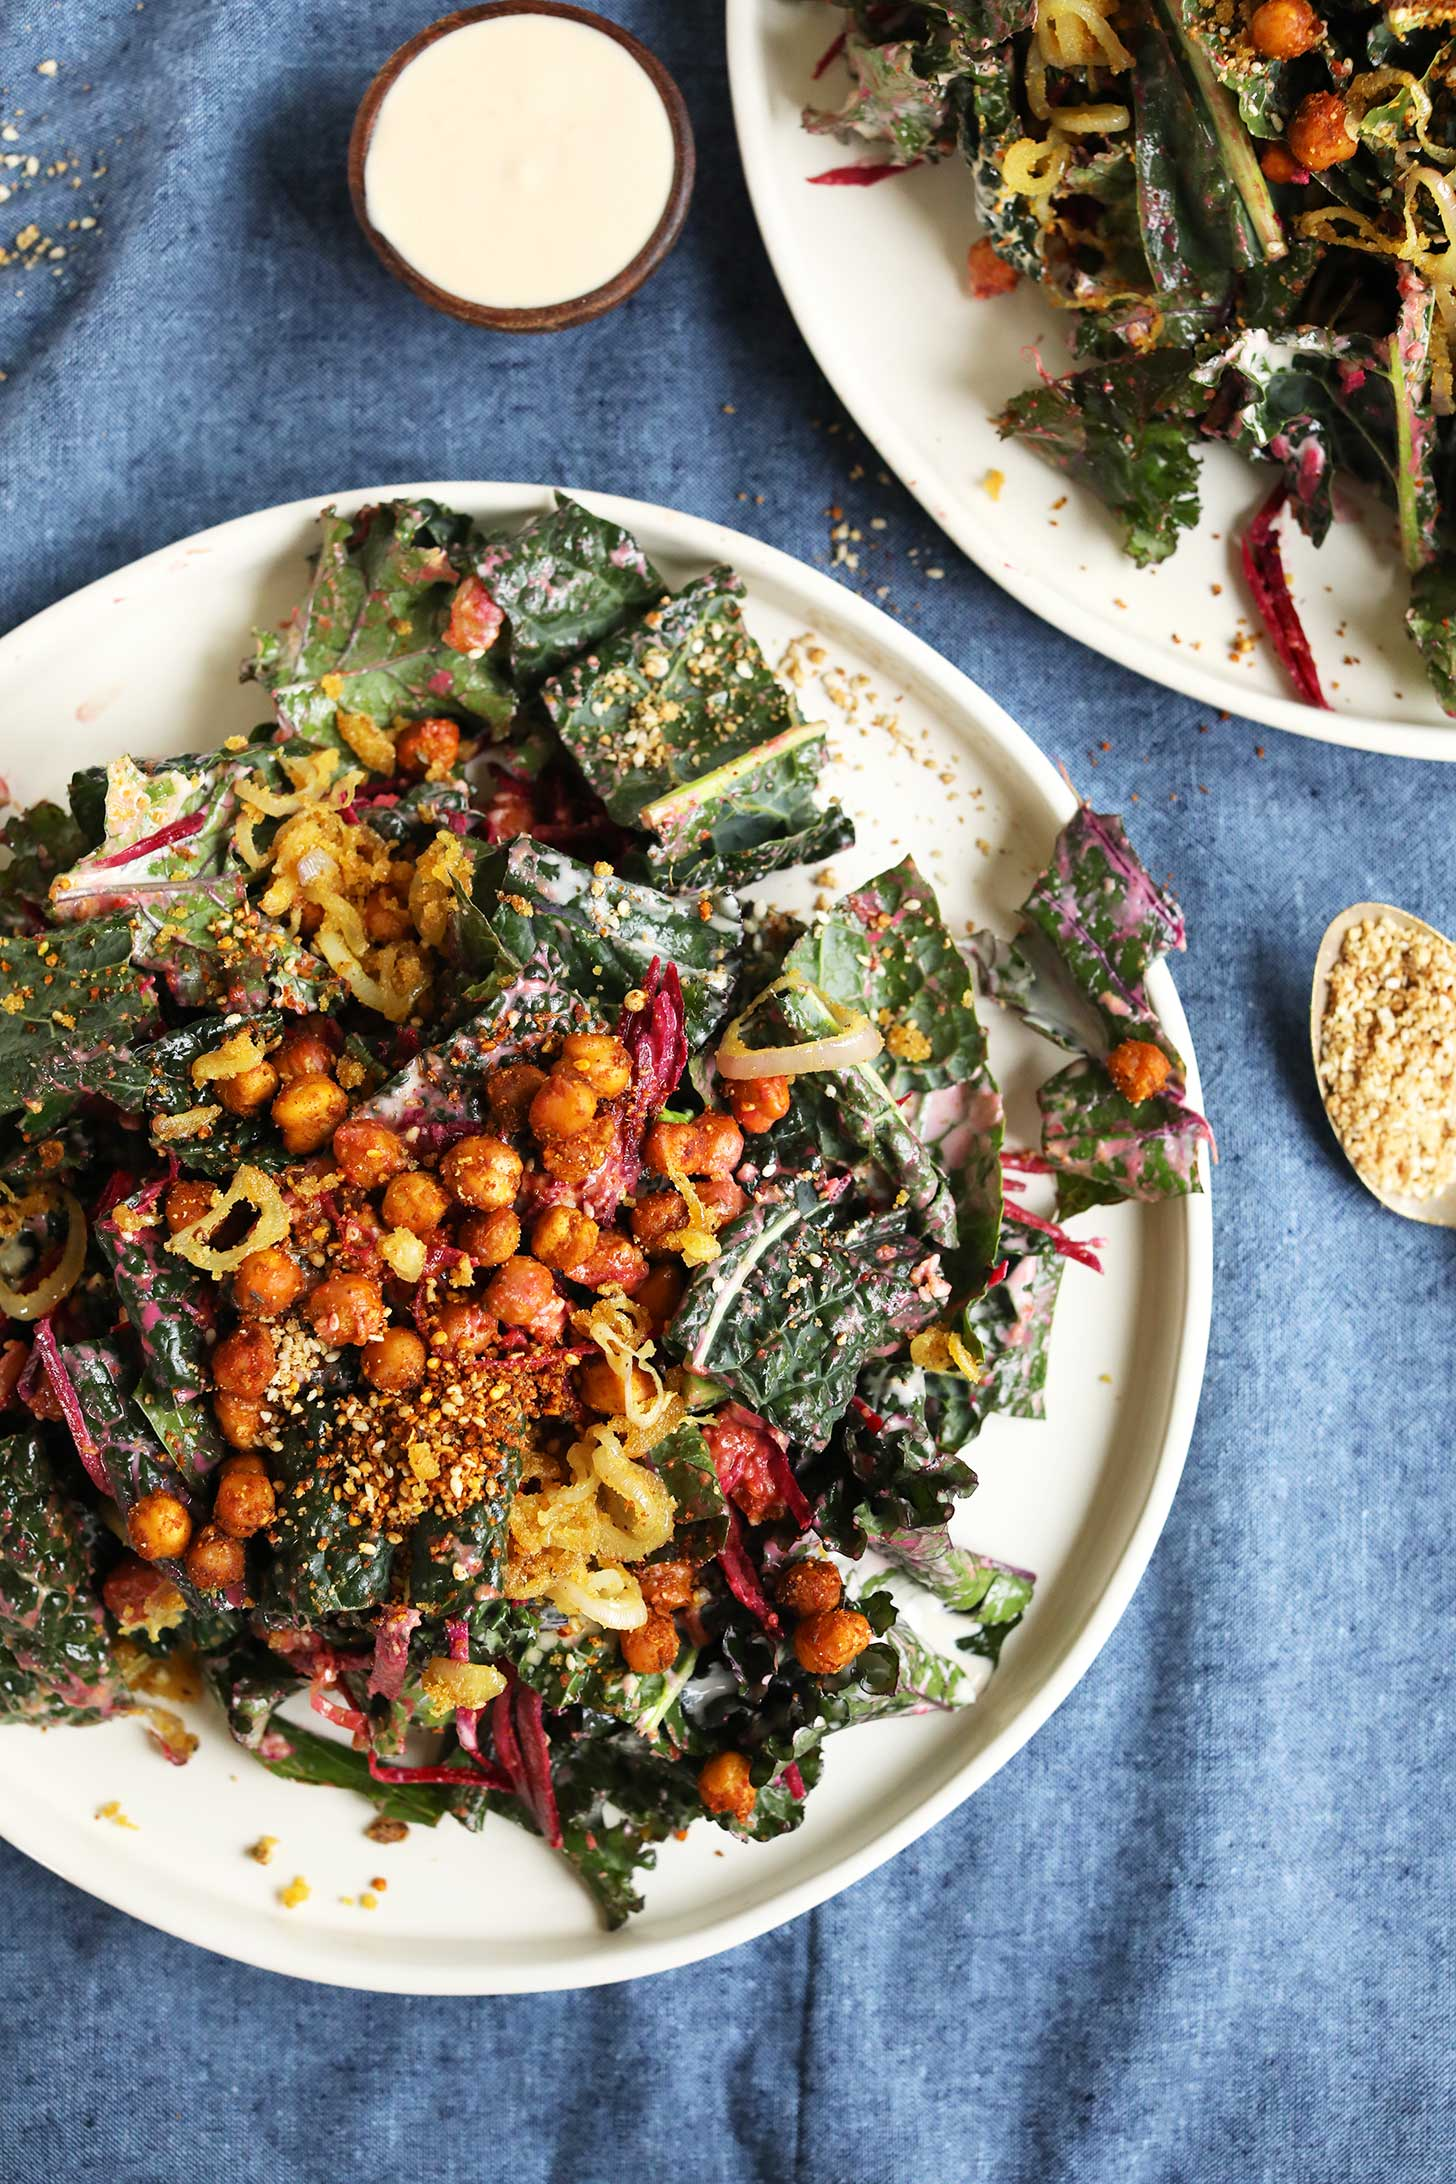 HEALTHY 30 minute Creamy Chickpea Kale Salad with Smoky Chickpeas Beets Dukkah #chickpeas #beets #smoky #vegan #glutenfree #salad #recipe #healthy #minimalistbaker